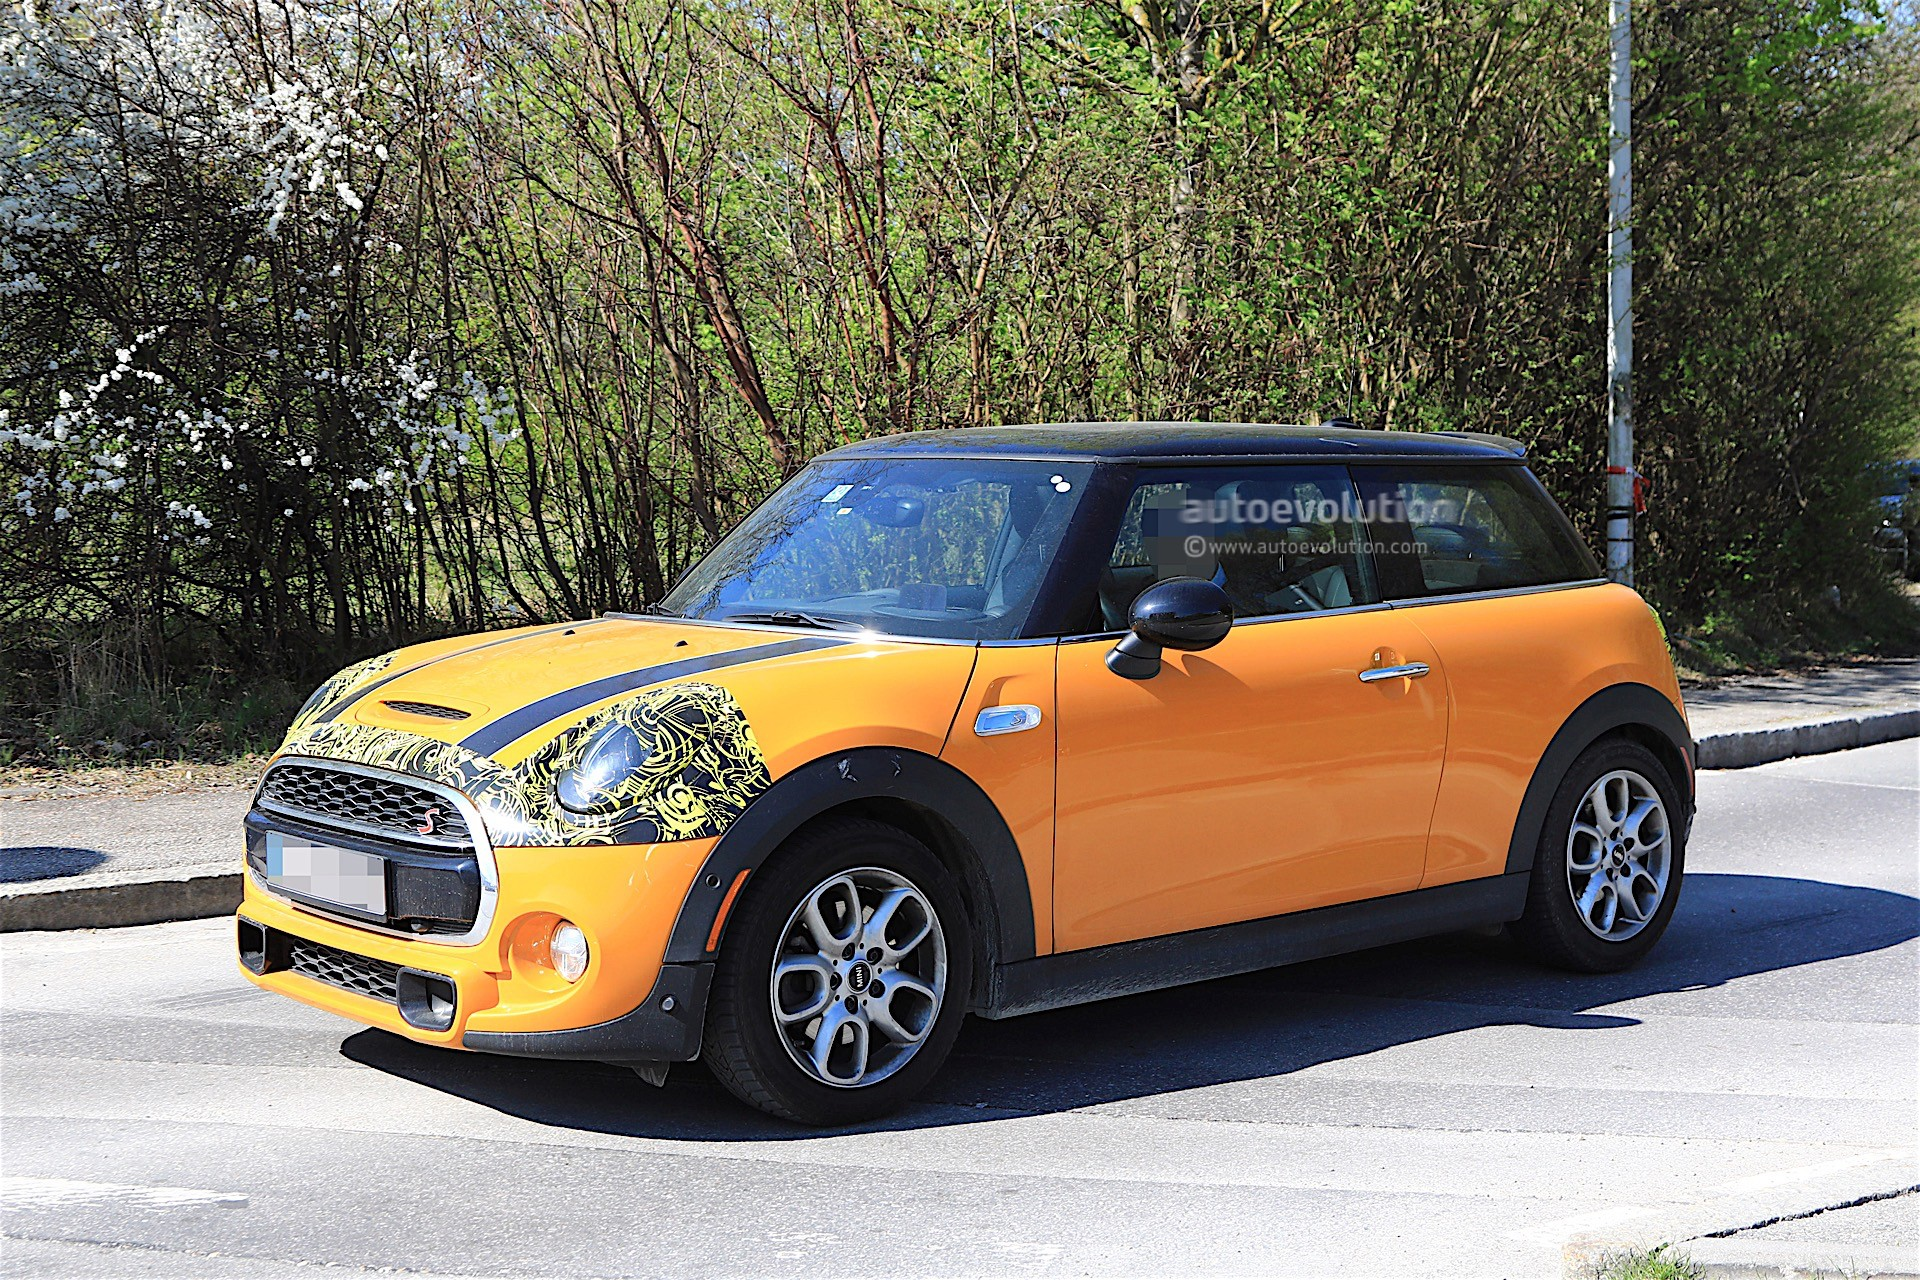 2018 mini cooper s facelift spotted testing it has minor changes autoevolution. Black Bedroom Furniture Sets. Home Design Ideas